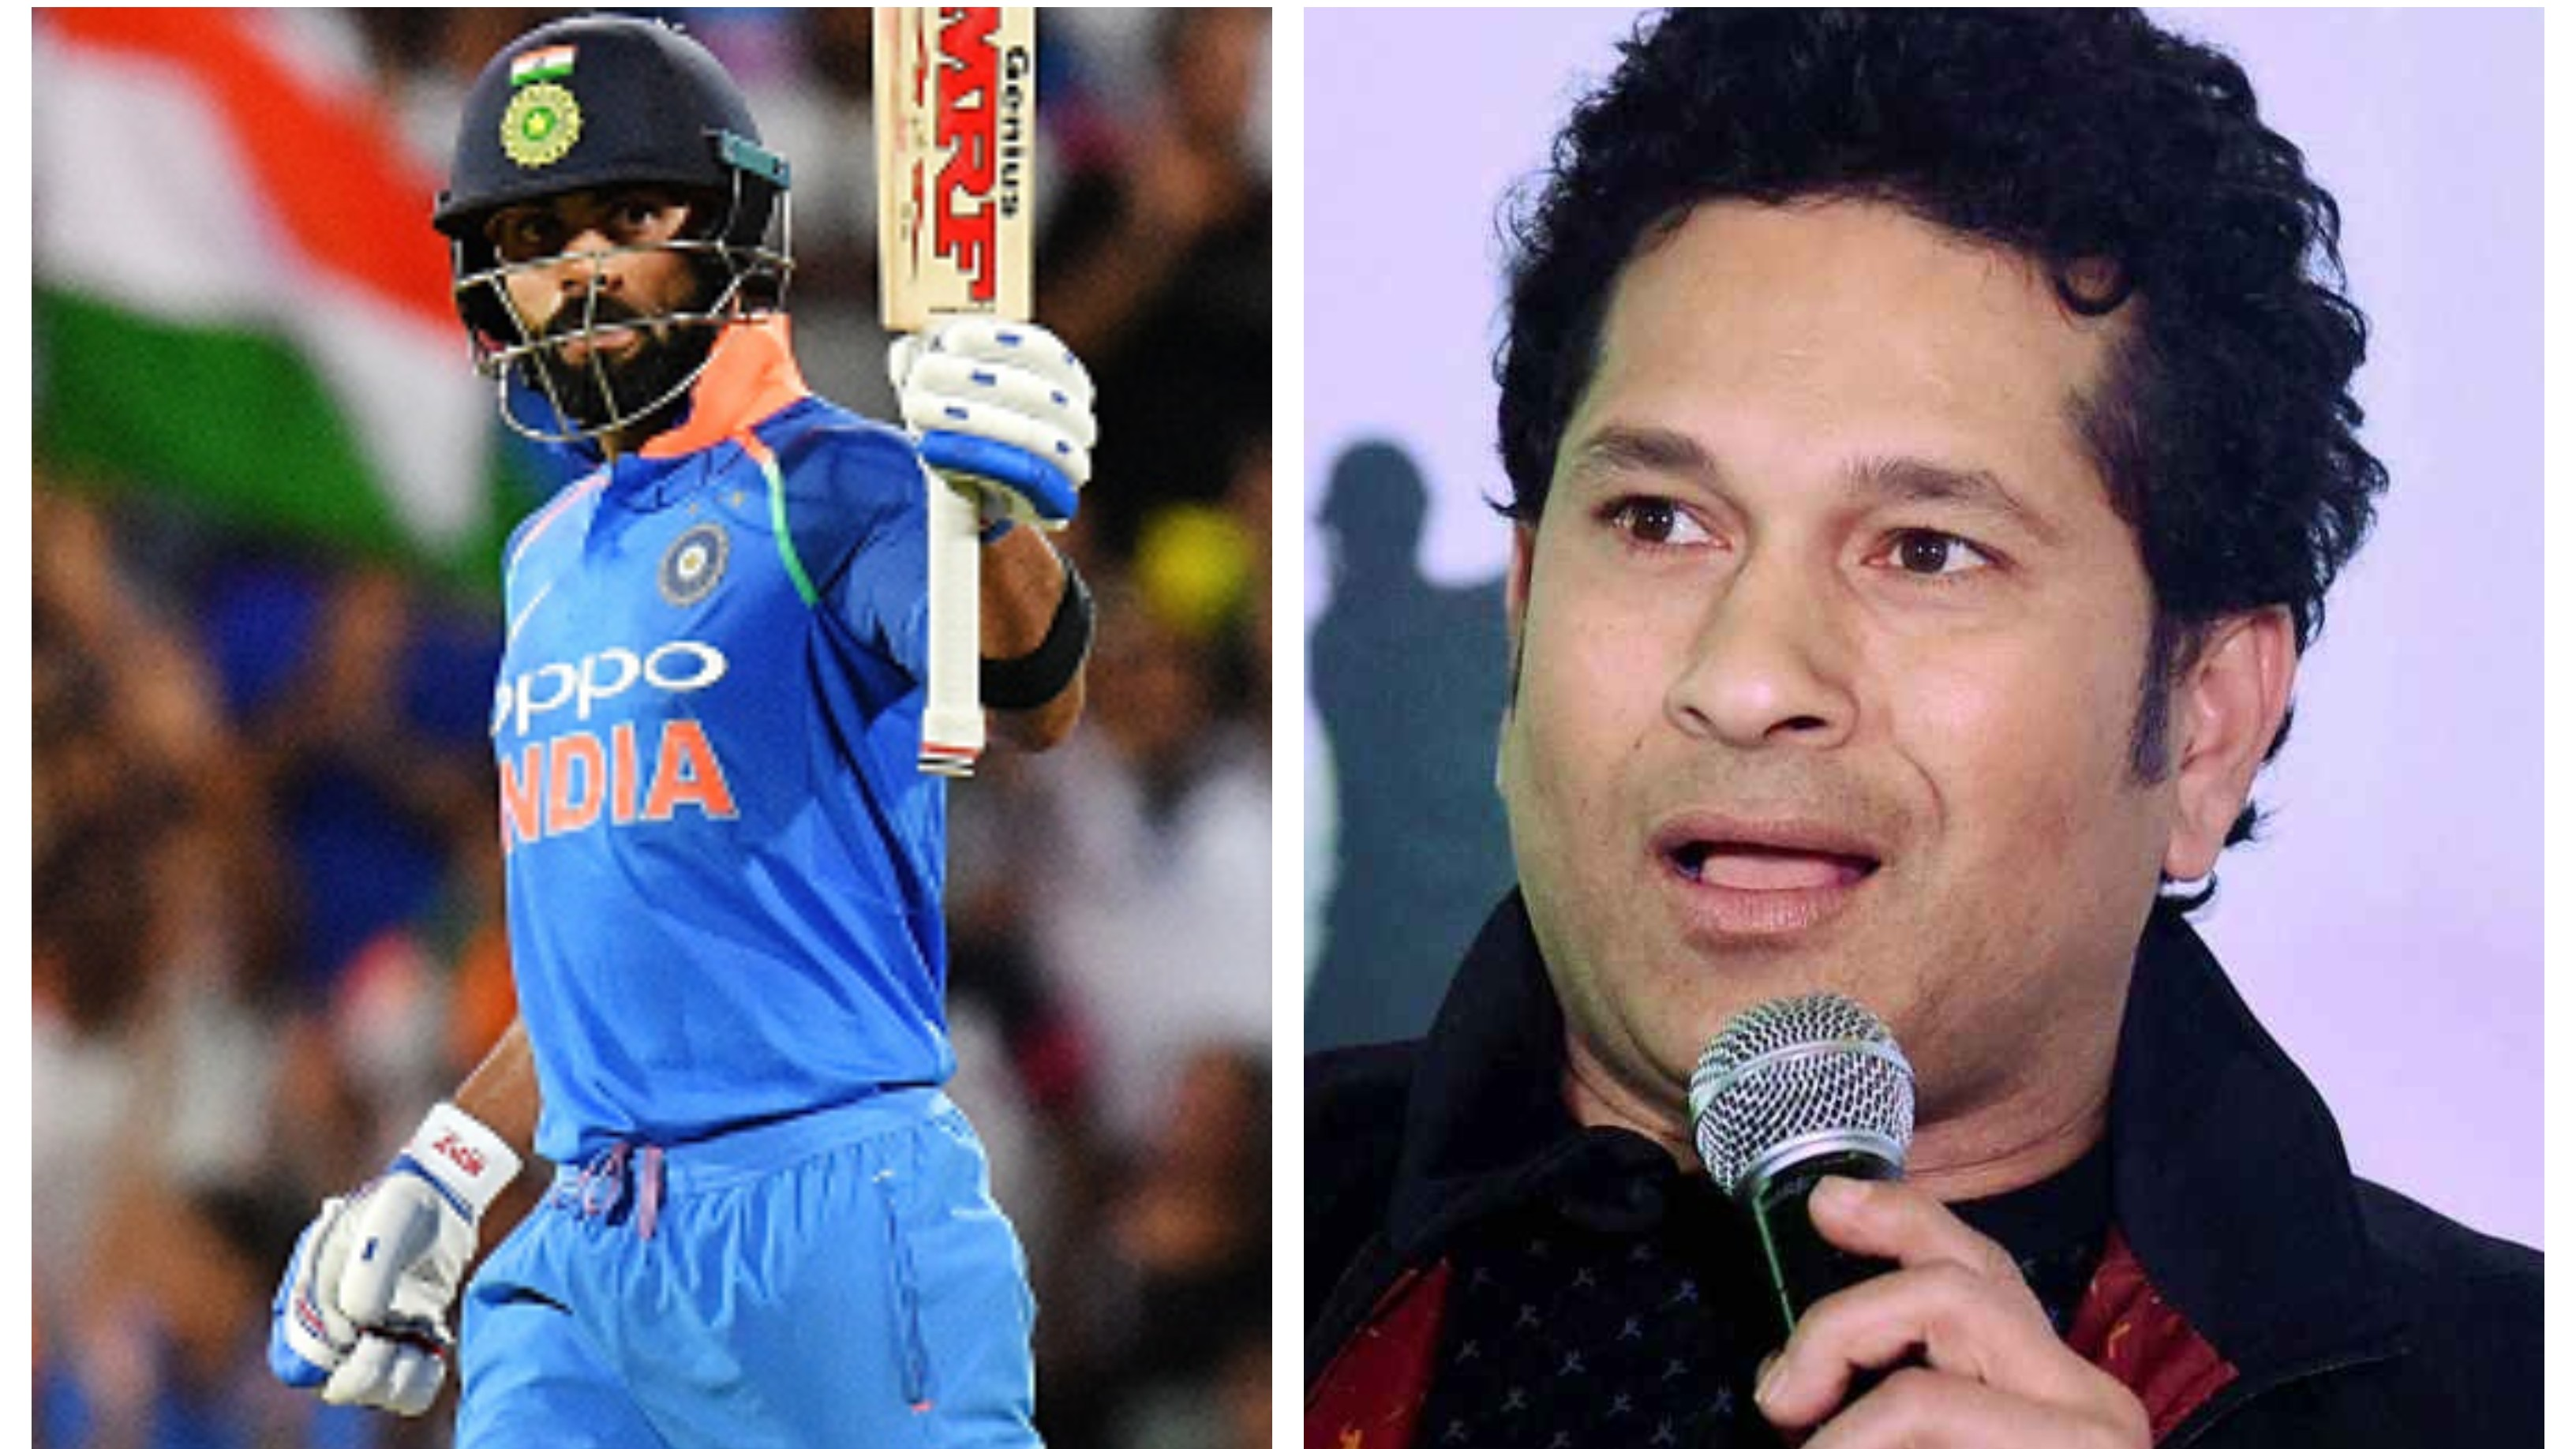 CWC 2019: Virat Kohli alone can't win the World Cup for India, says Sachin Tendulkar